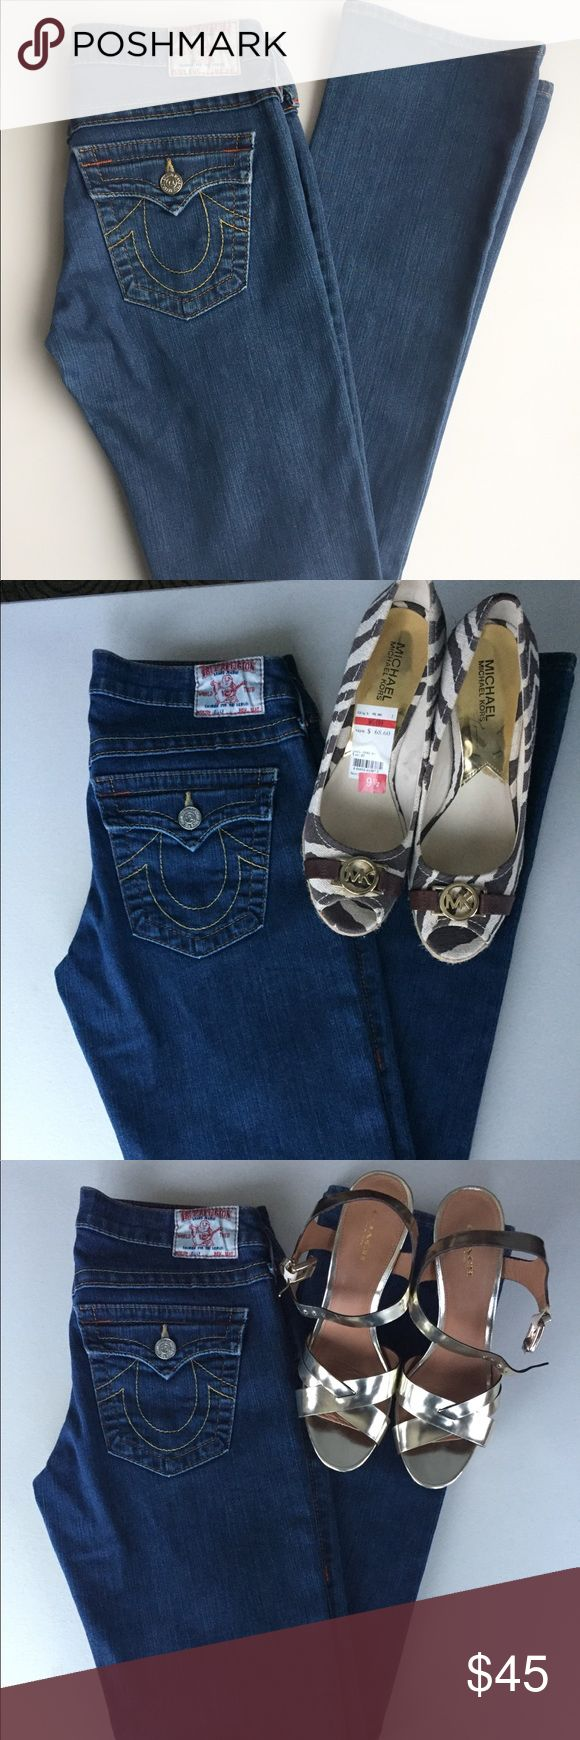 True Religion straight cut jeans size 27 Like new (only worn once) True Religion jeans, size 27. Easy to dress up or down! Bundle and save! True Religion Jeans Straight Leg